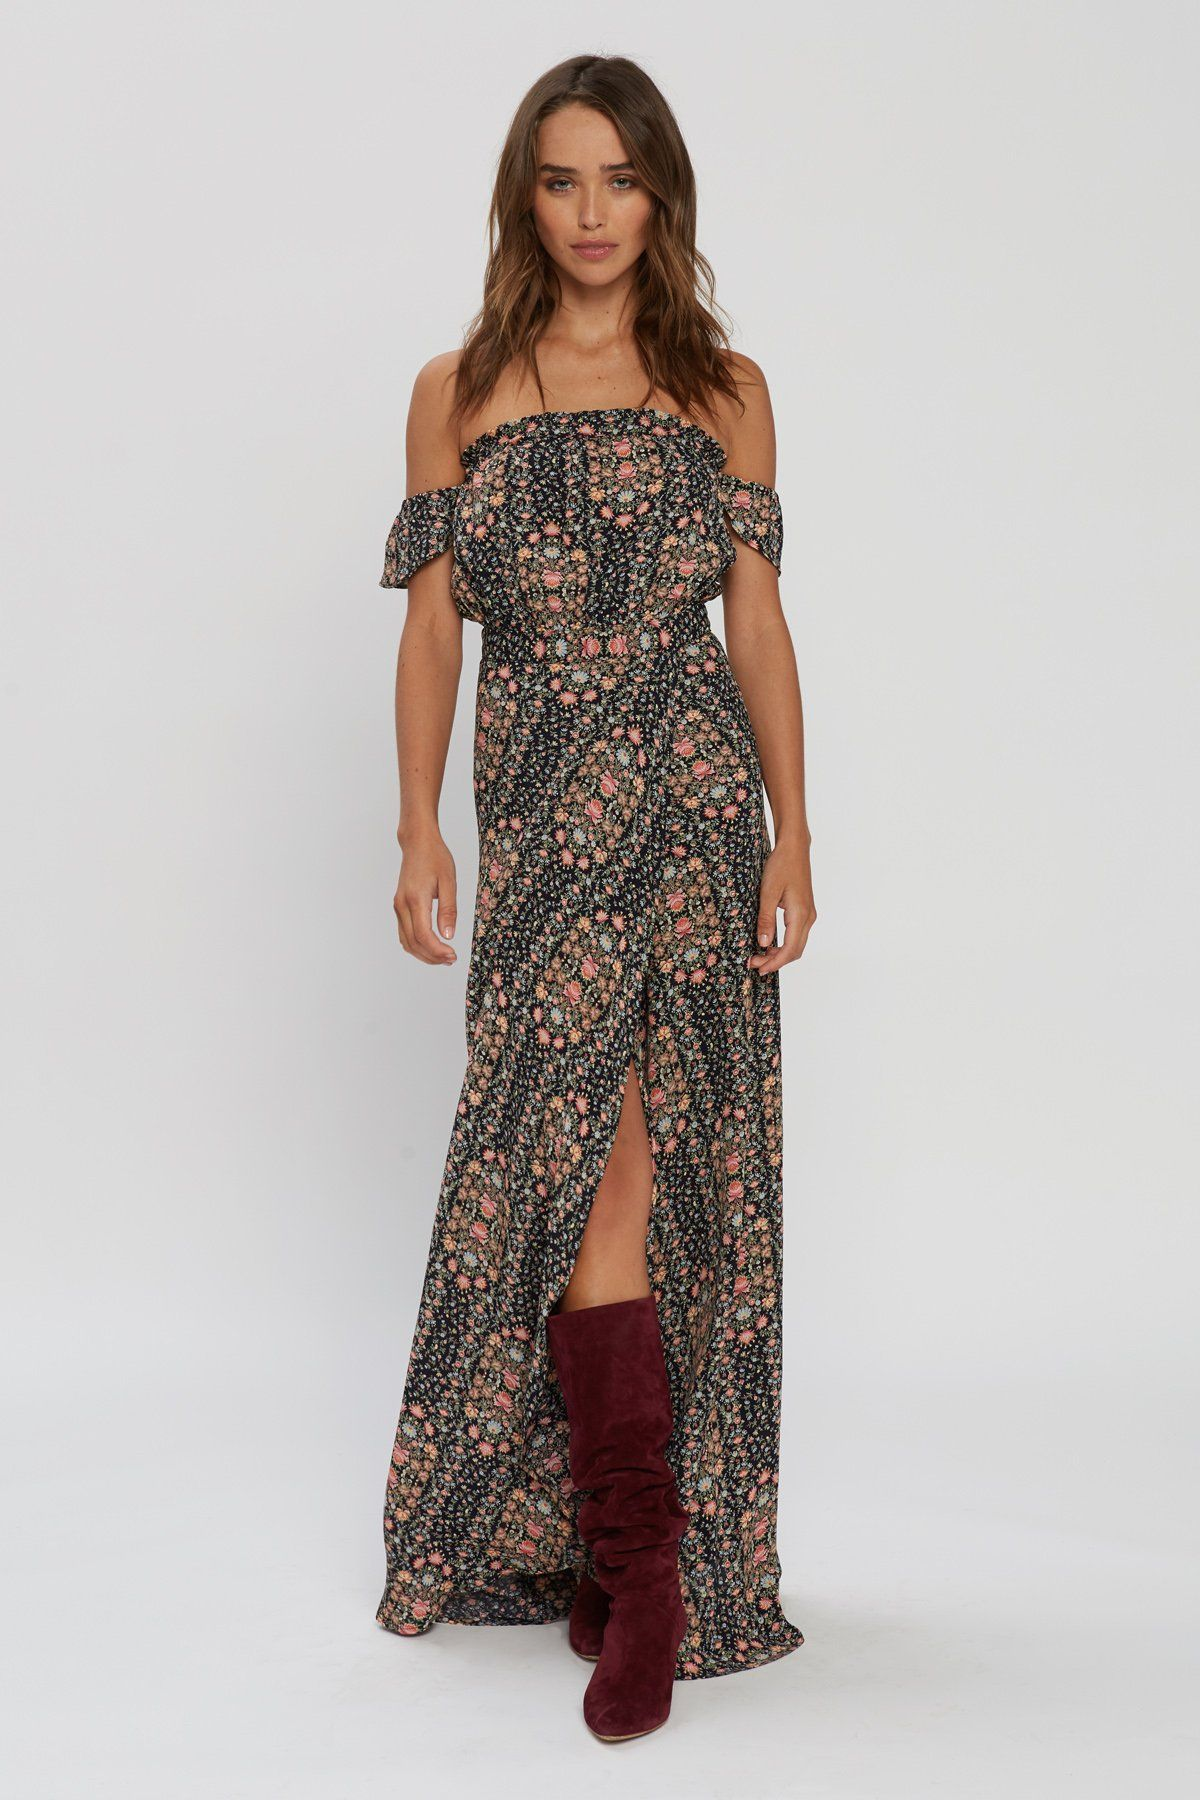 49357c7d11 Flynn Skye Bella Maxi Dress in Love Daze Print